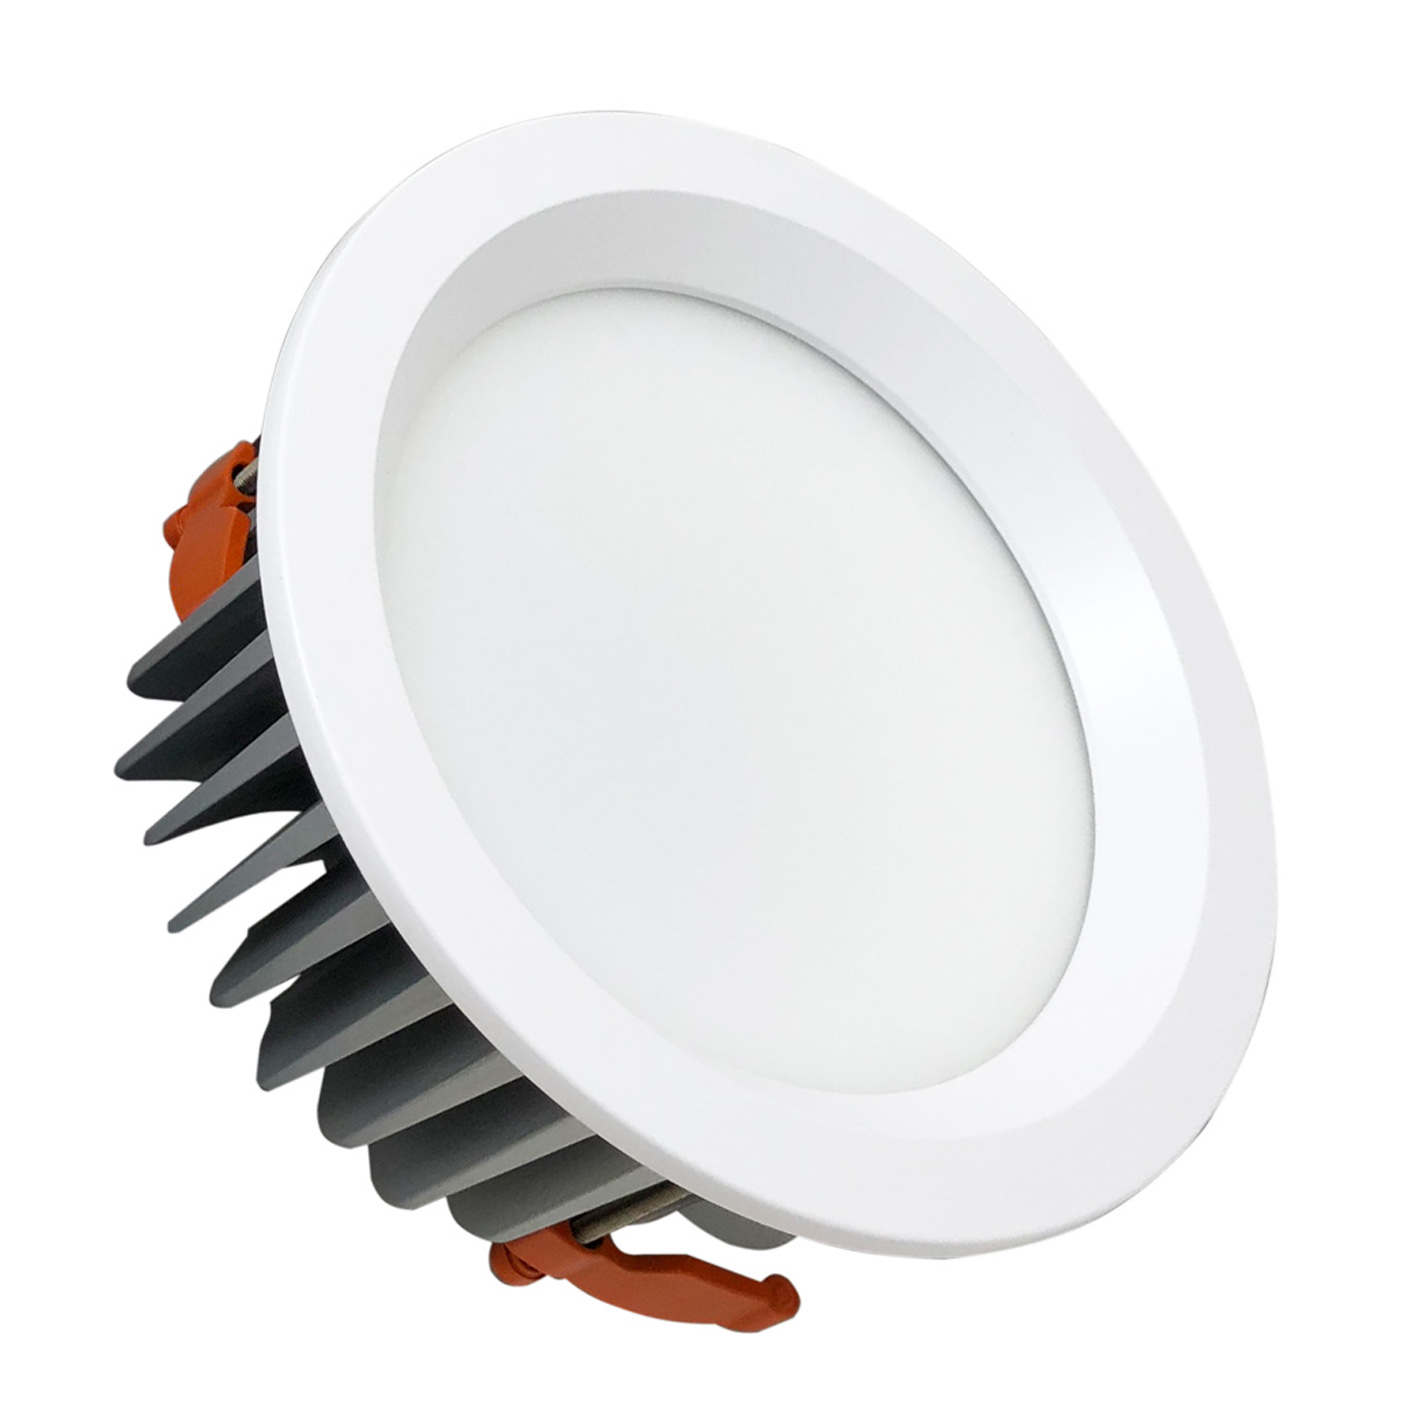 LED floodlight 40W recessed Powerful Bright led built-Silamp spotlight 230mm